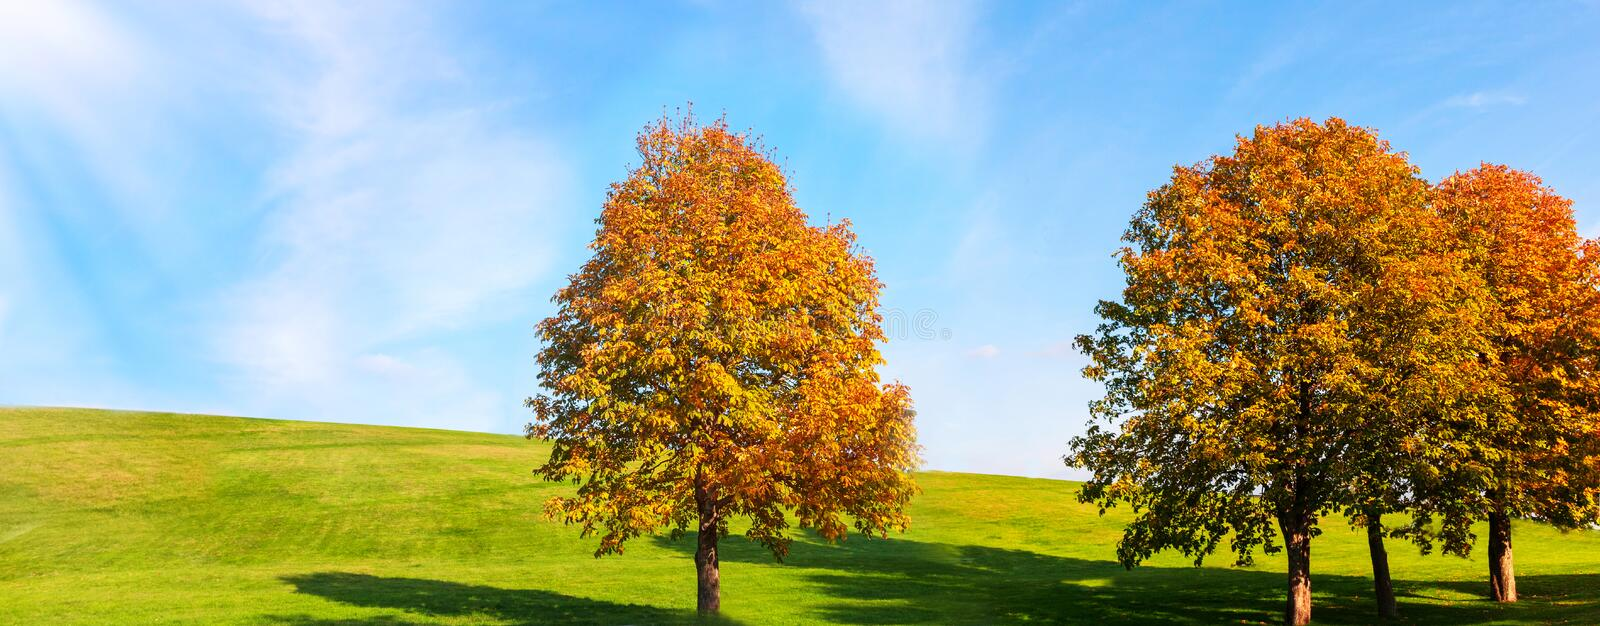 Autumn yellow chestnut trees against the background of green grass and bright blue sky. Autumn bright background. stock image